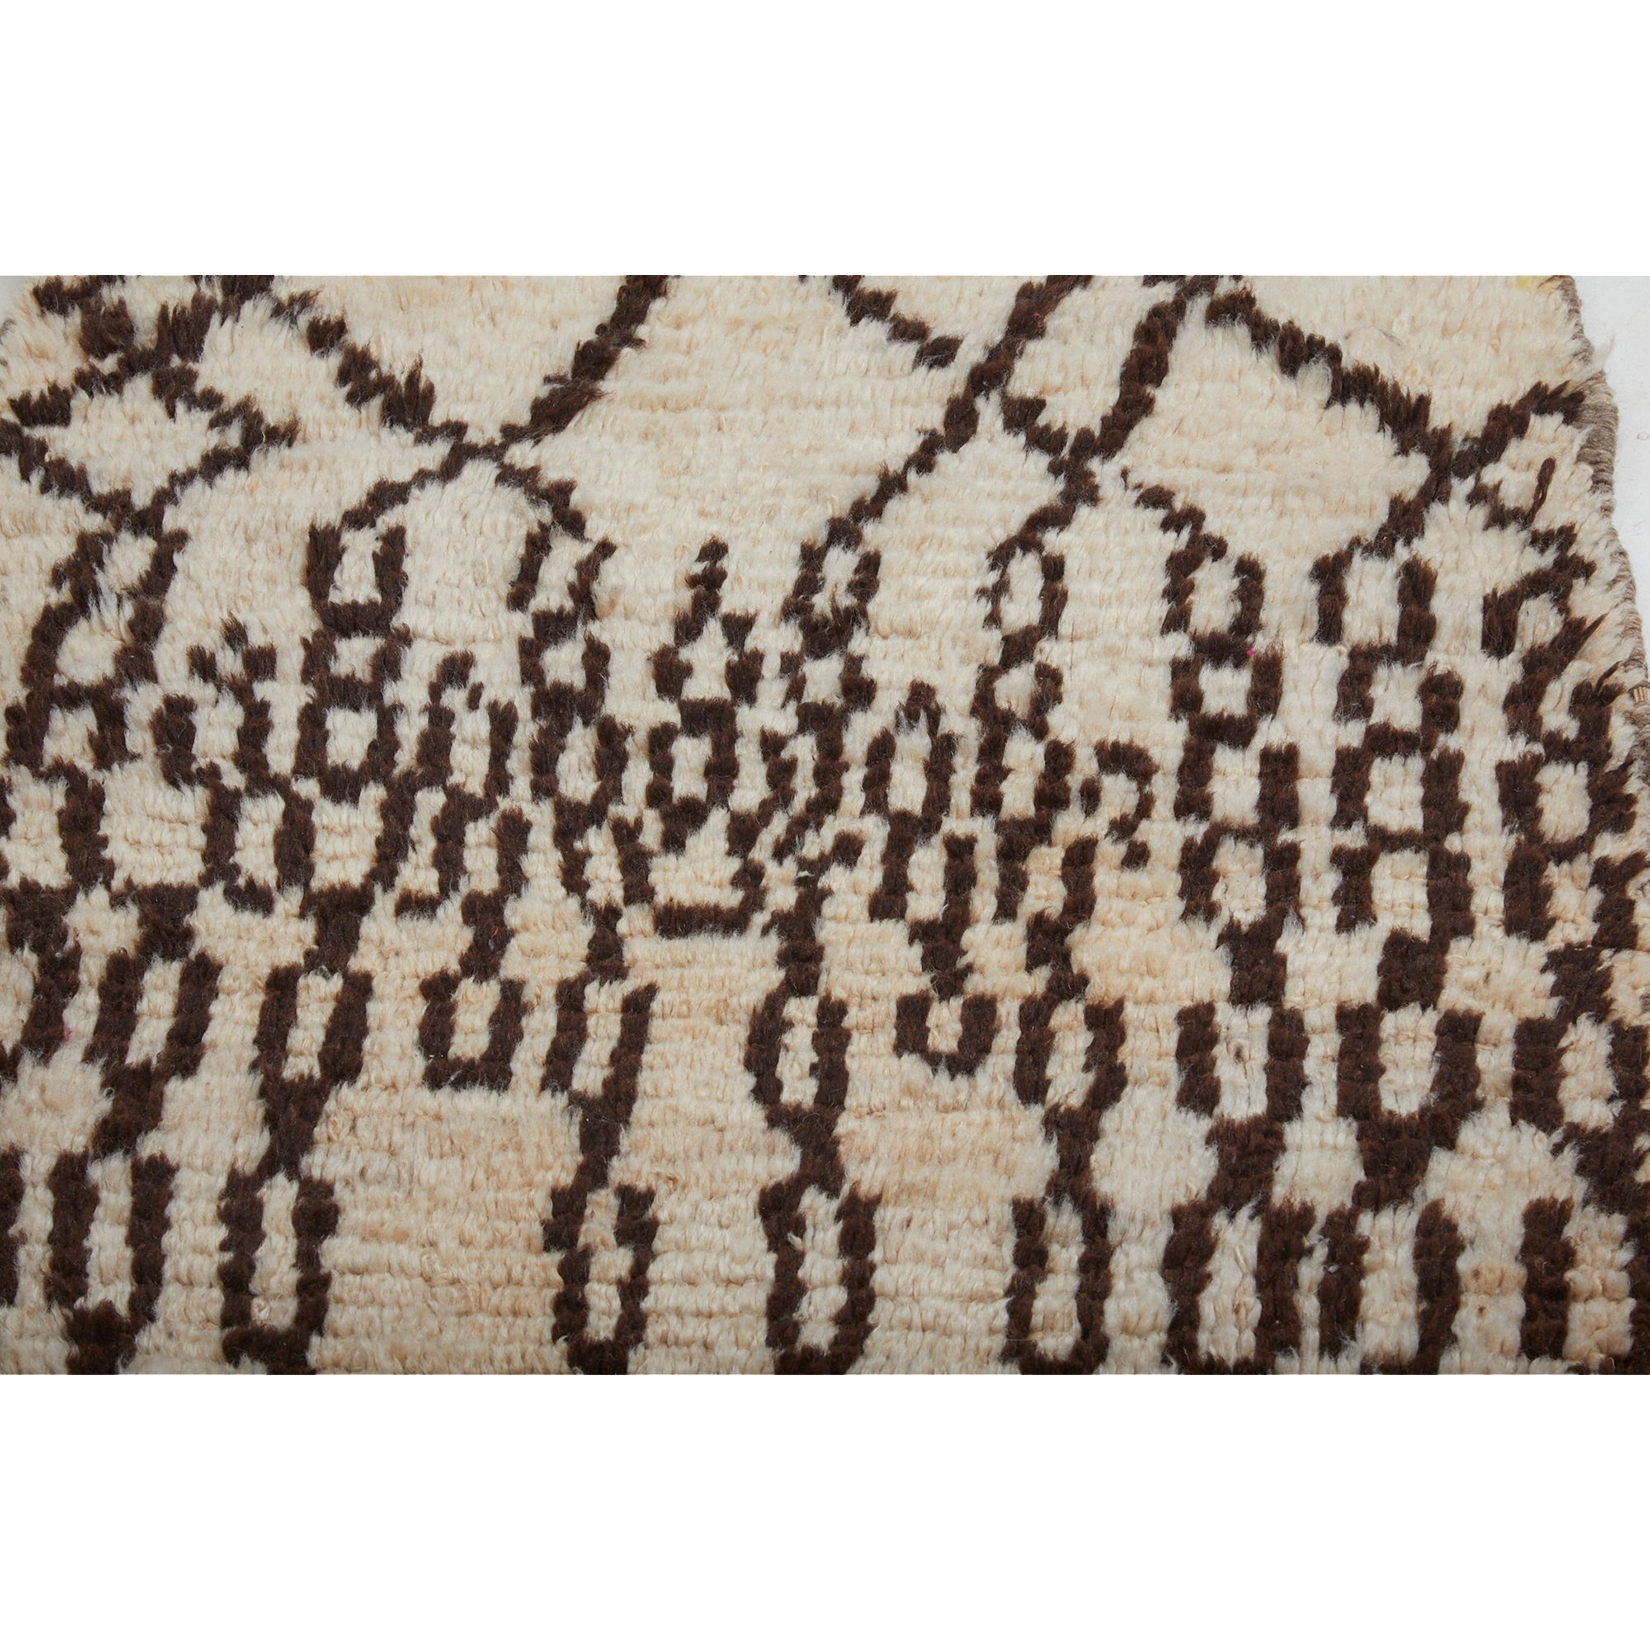 Authentic white berber carpet - Kantara | Moroccan Rugs